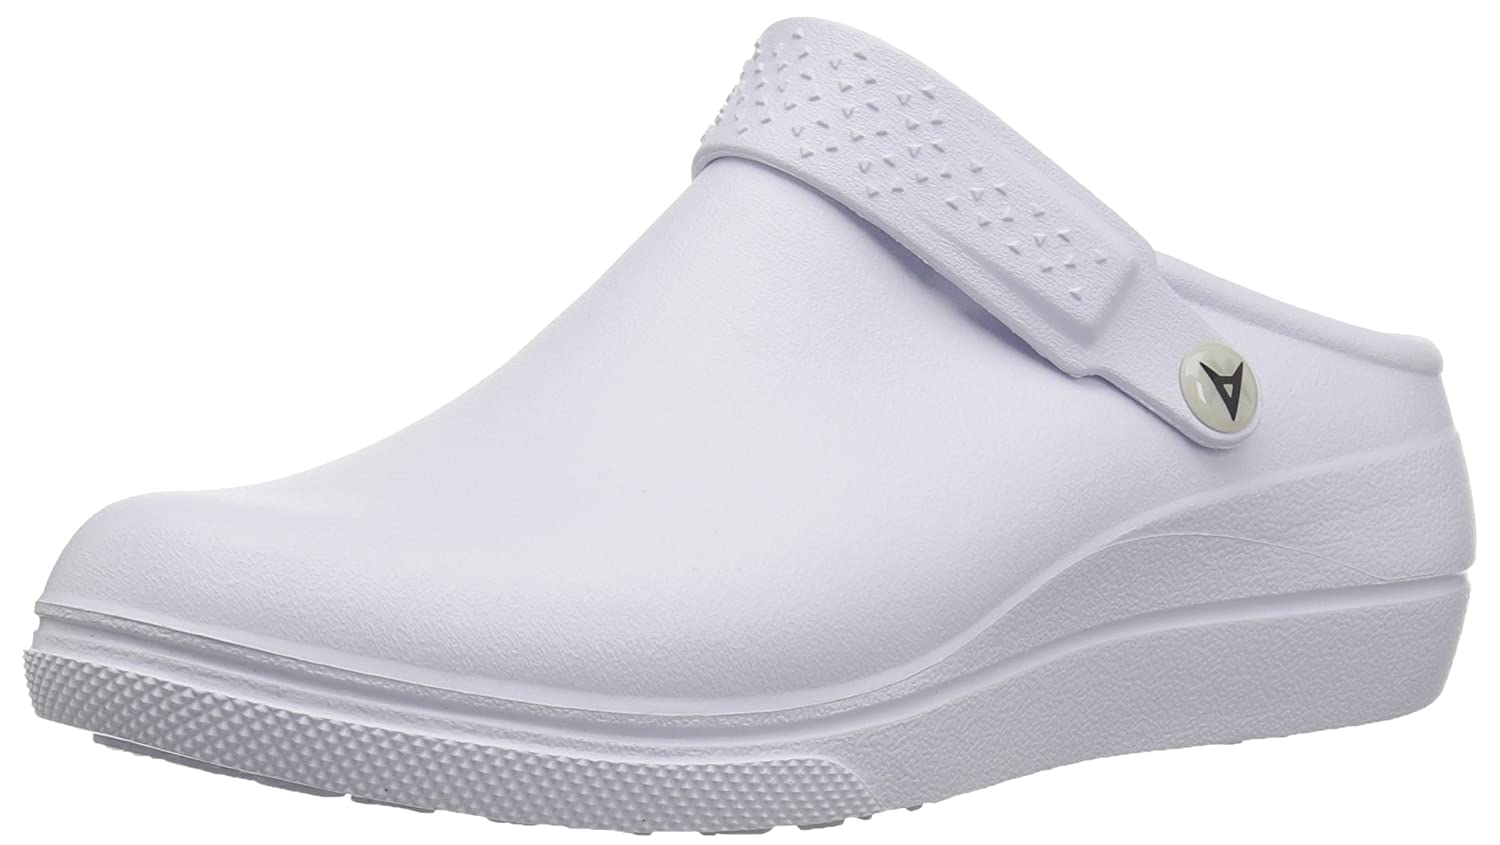 White, White Anywear Womens Peak Health Care Professional shoes